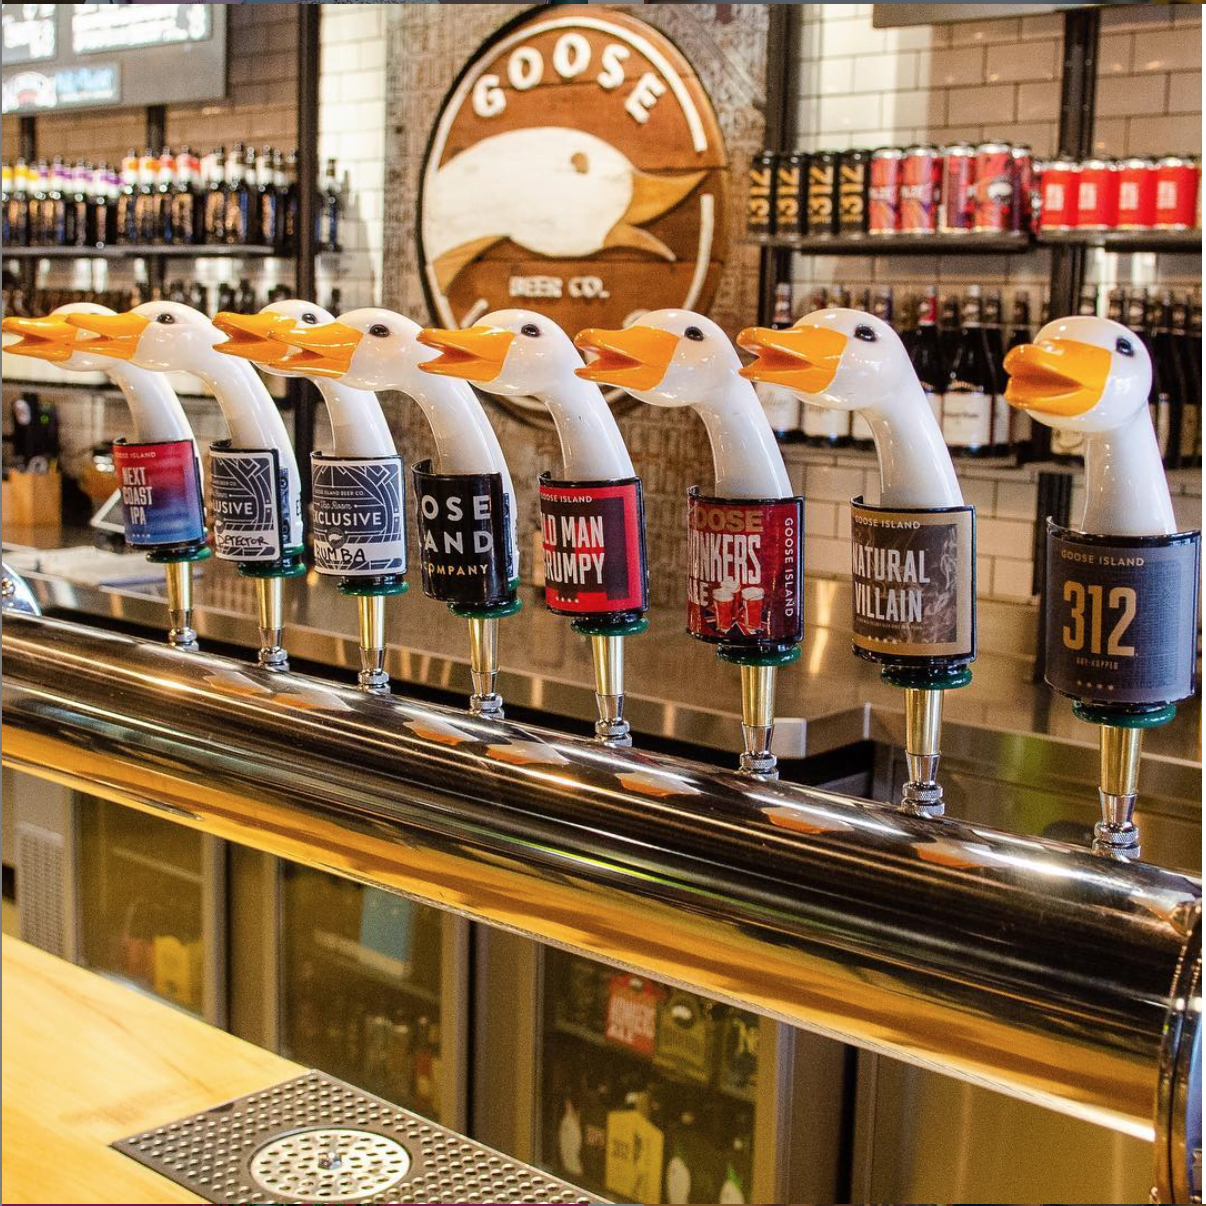 A lineup of the brews on tap at Goose Island Beer Co. on the North Side. Chicago was recently named the brewing capital of America.